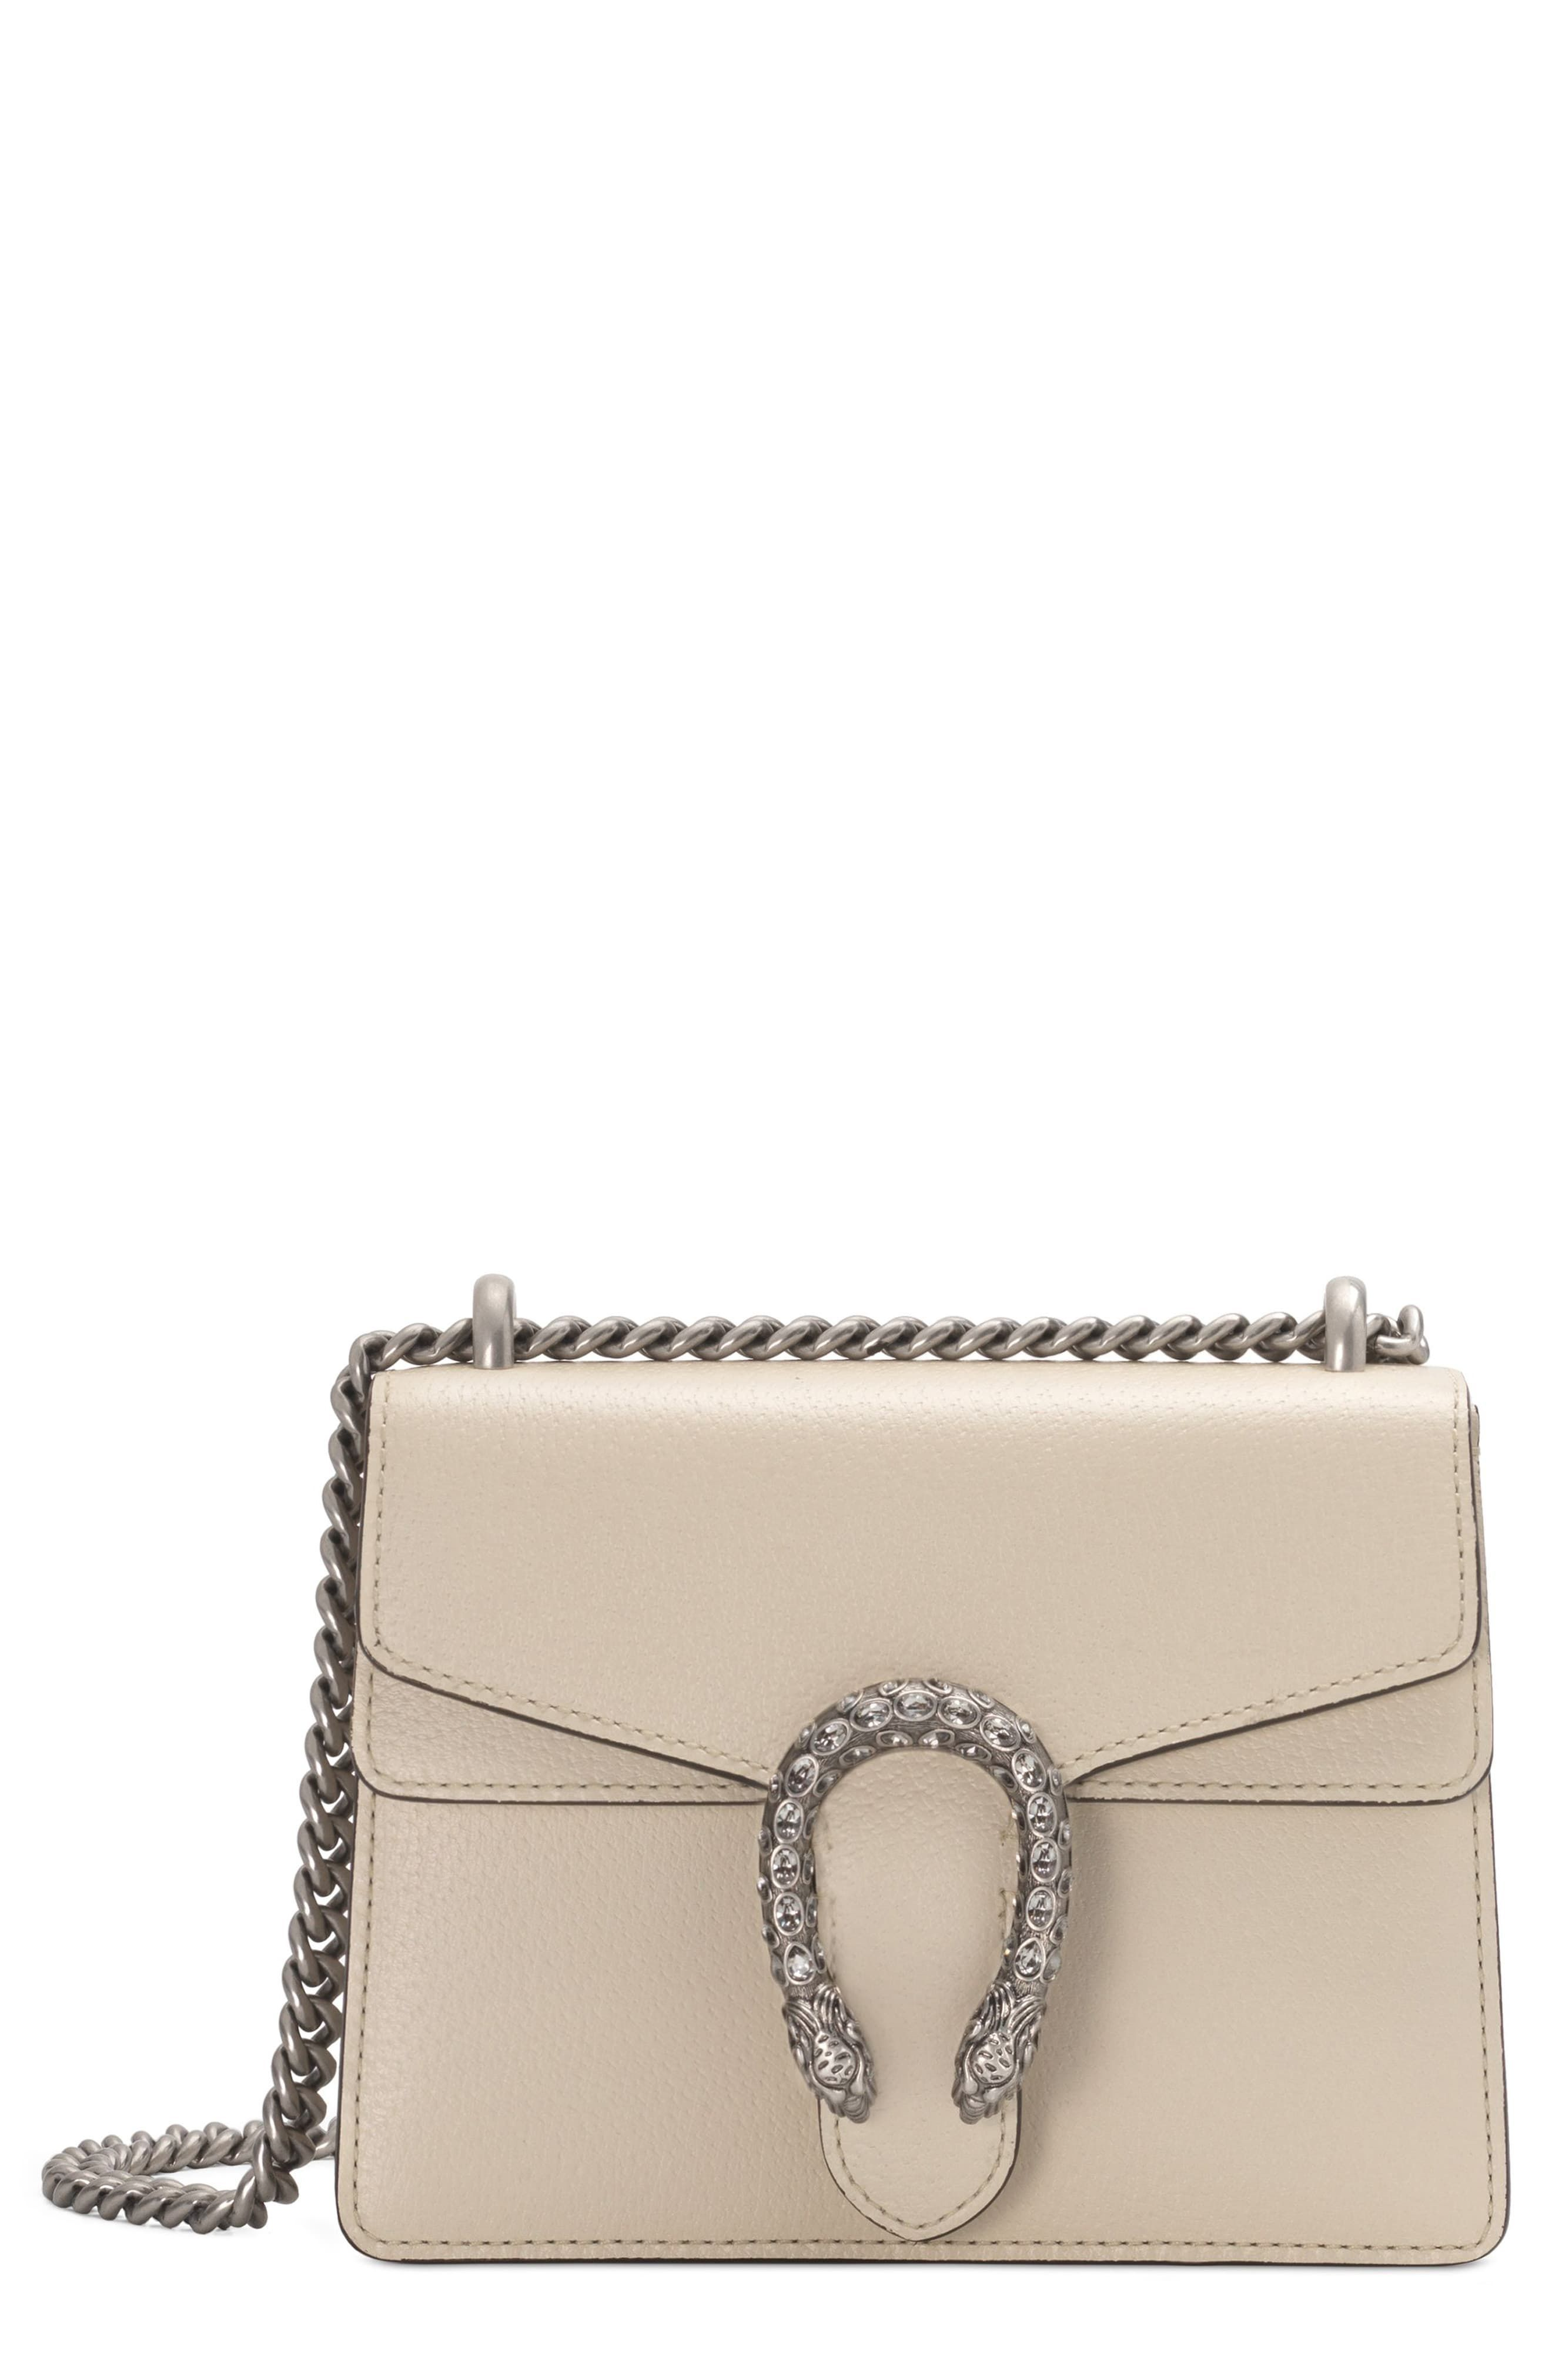 c76945ece Gucci Mini Dionysus Leather Shoulder Bag in 2019 | Products ...